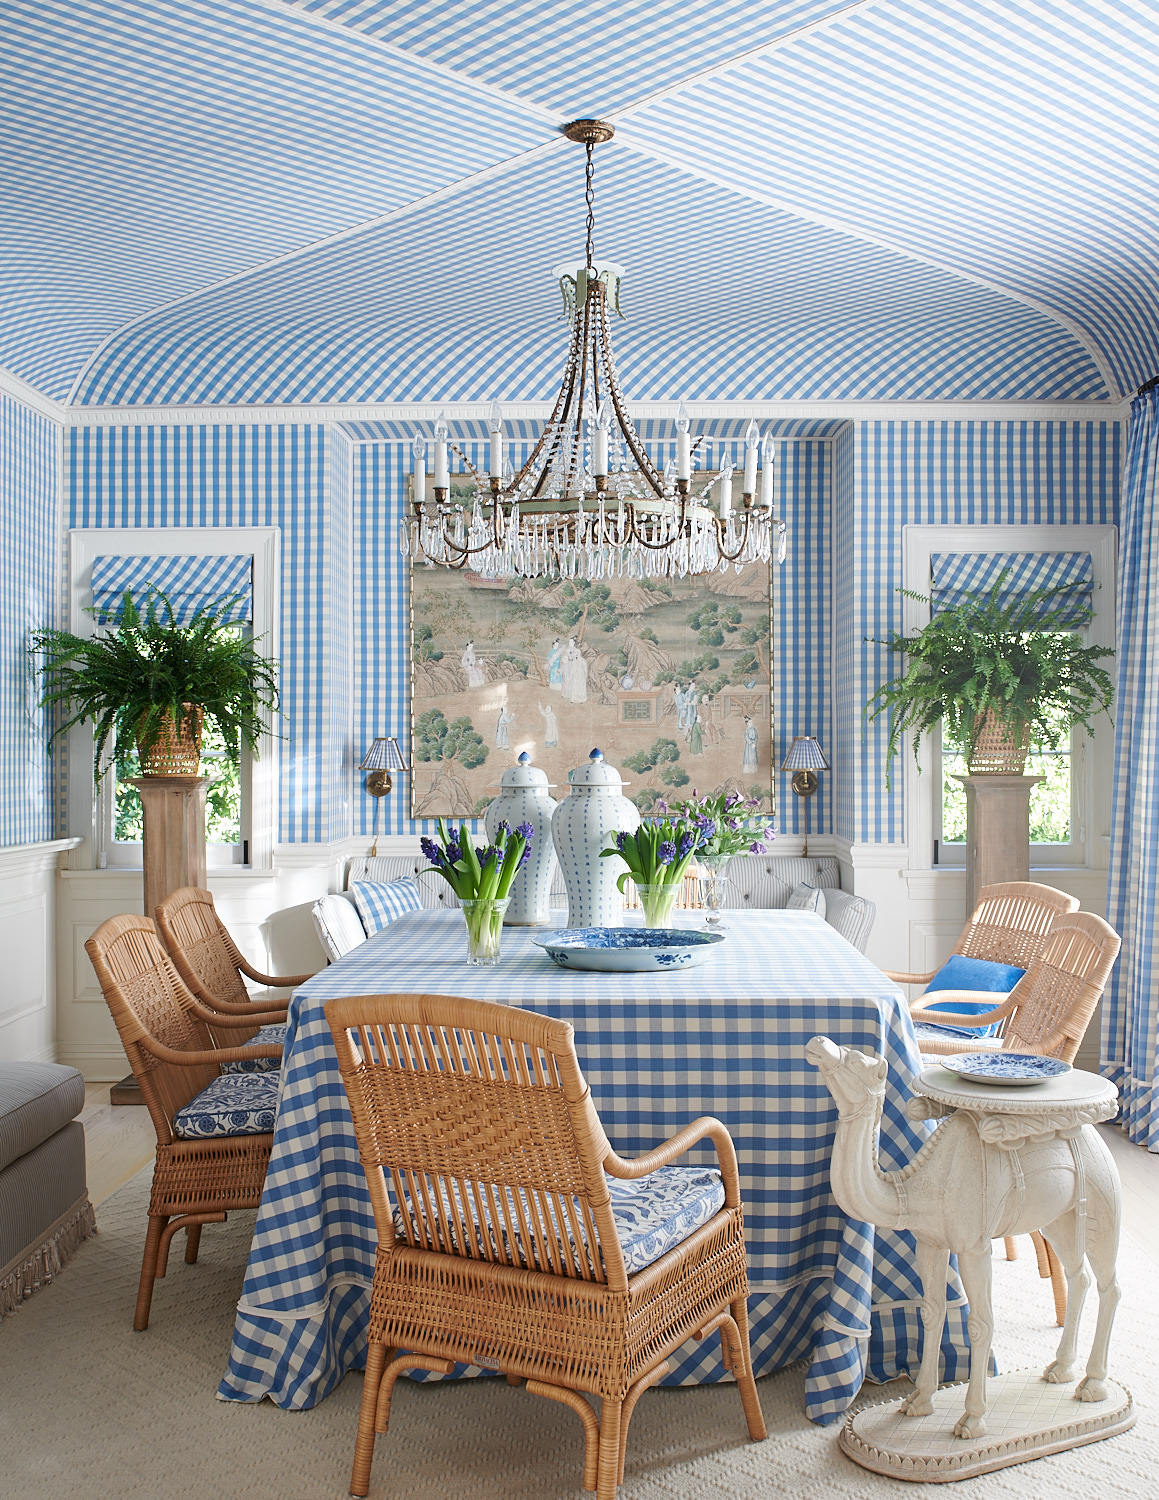 Custom checkered wall upholstery, roman shades, and custom seat pillows on cane chair